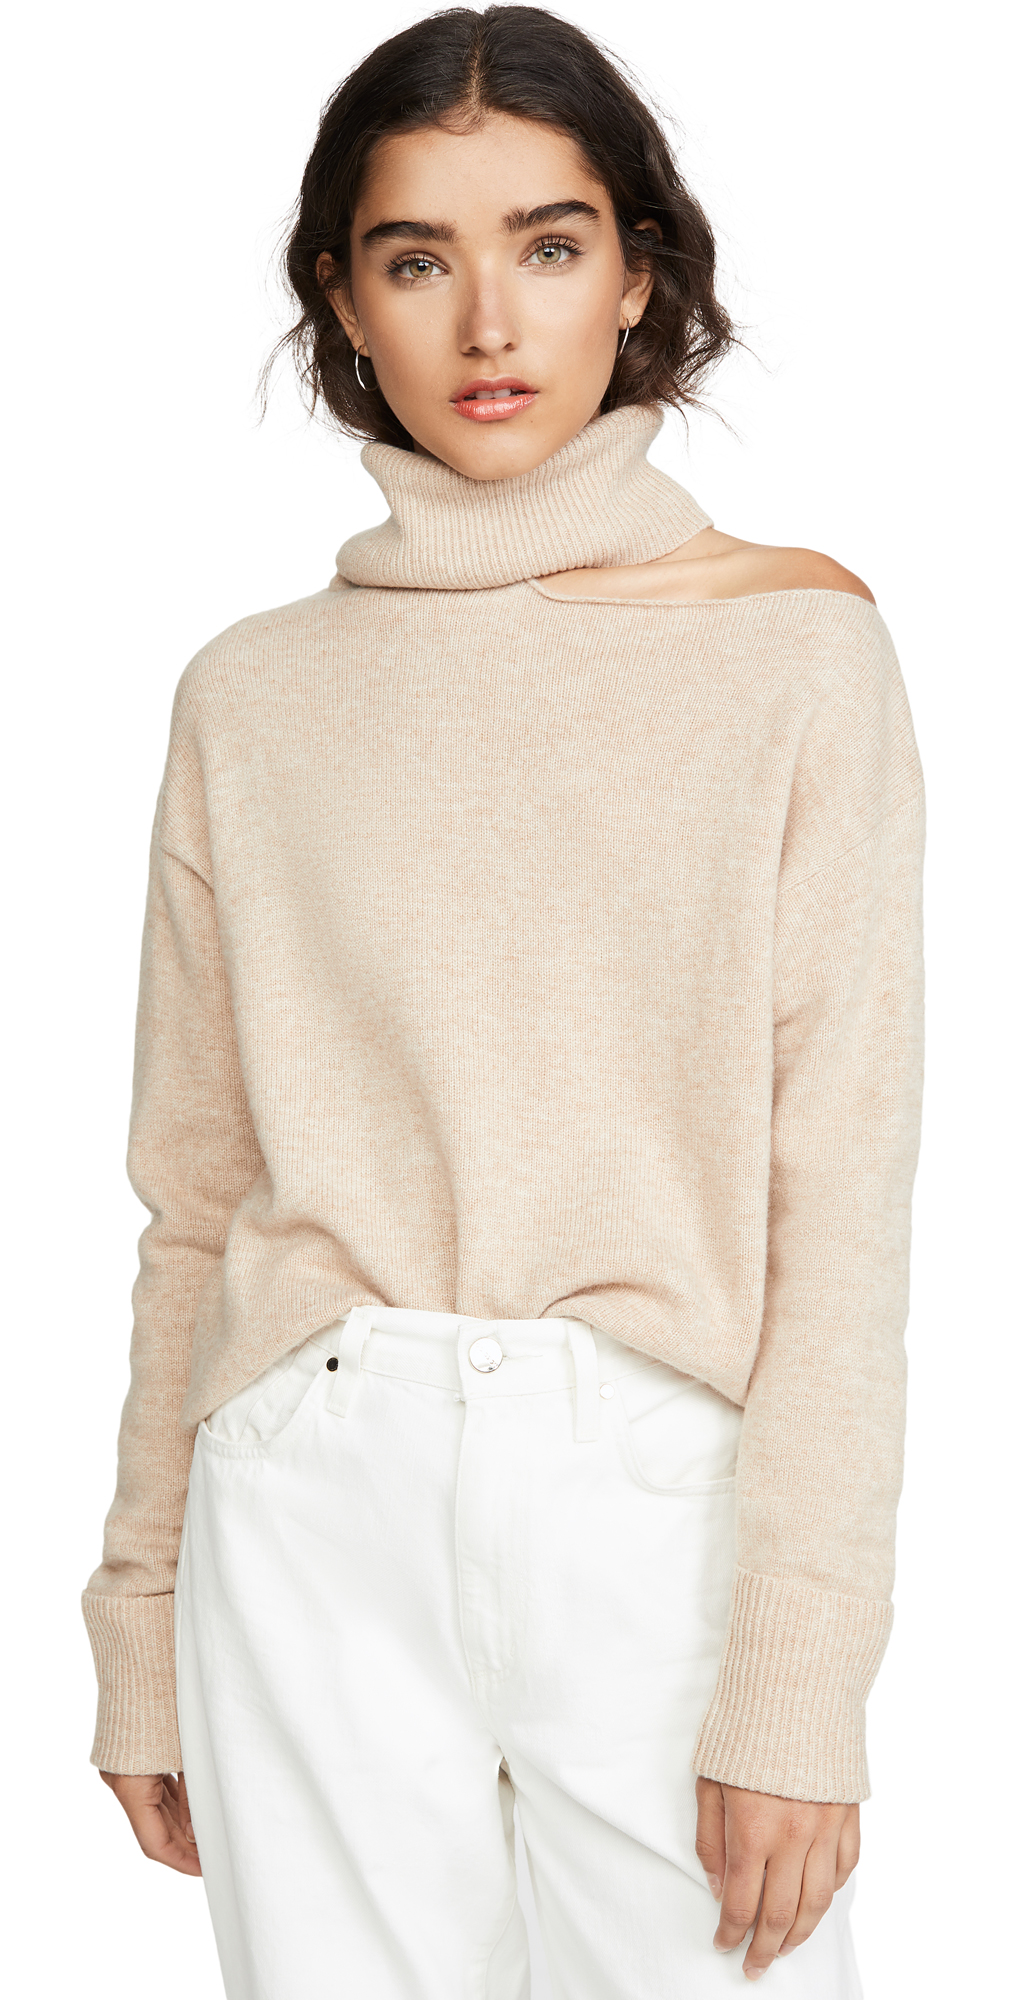 AMUR Avalon Sweater (Copy)